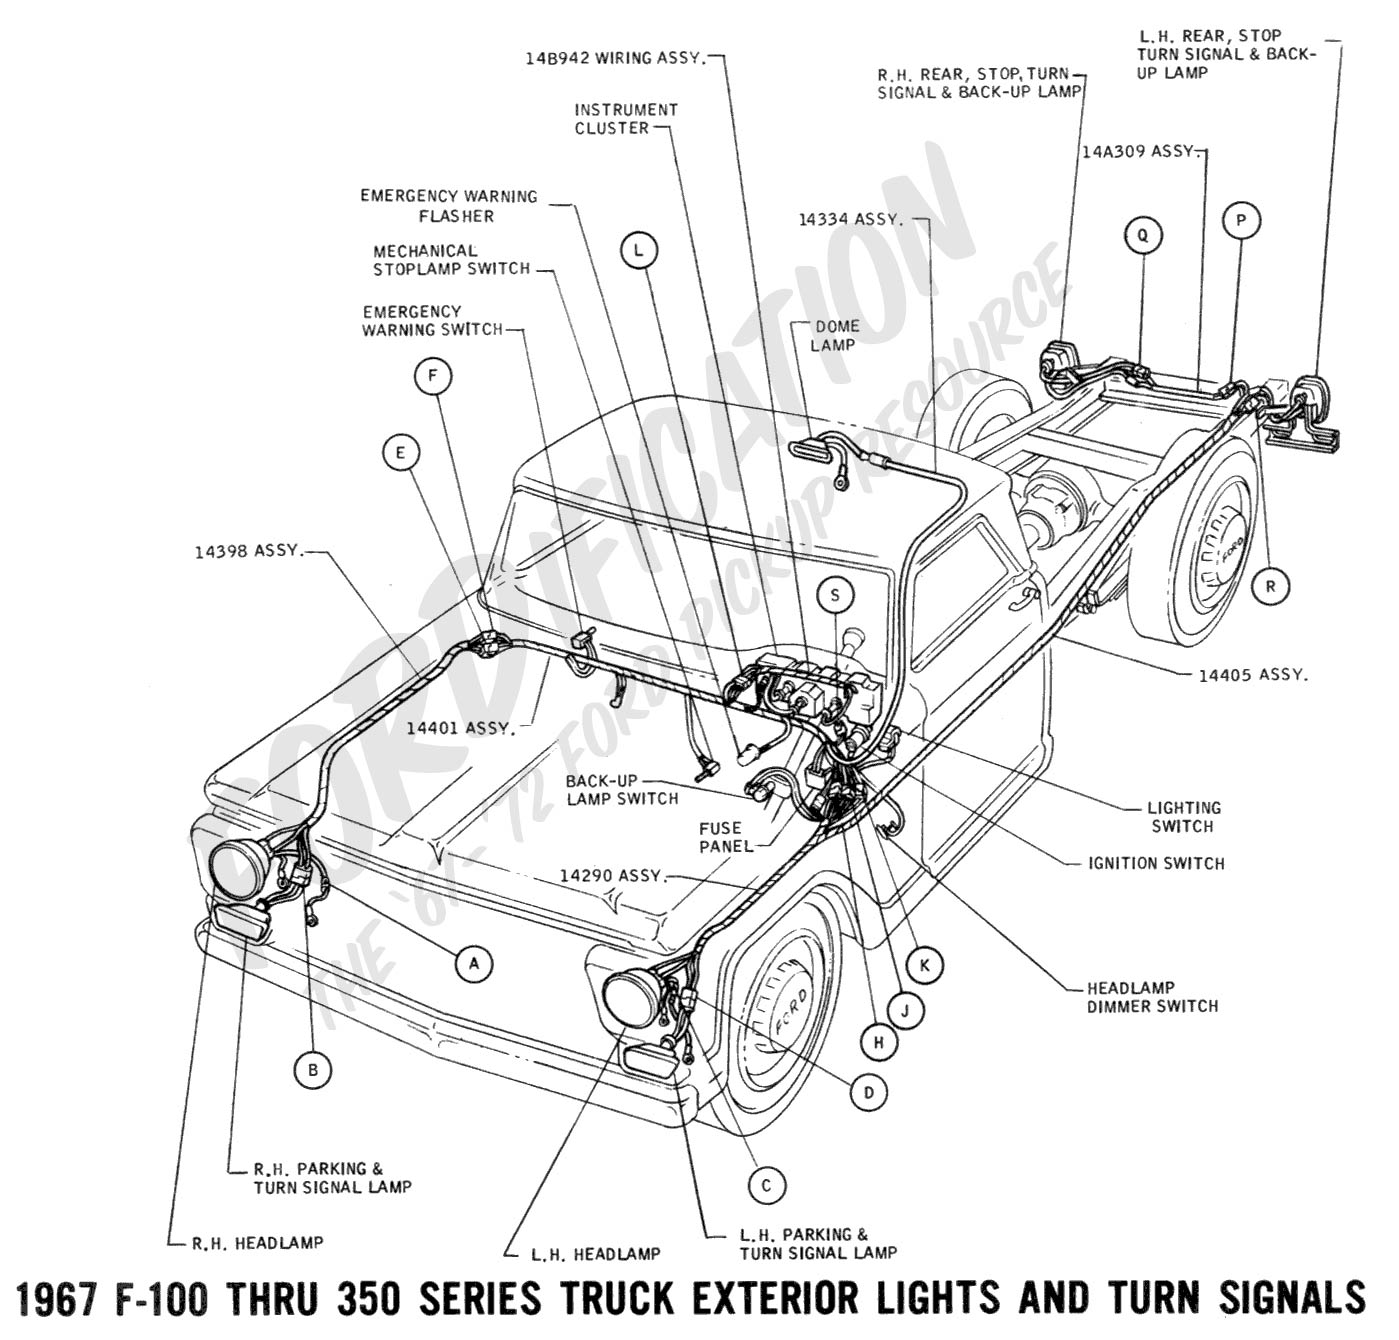 wiring 1967extlights01 ford truck technical drawings and schematics section h wiring 1994 ford f150 xlt wiring diagram at bayanpartner.co